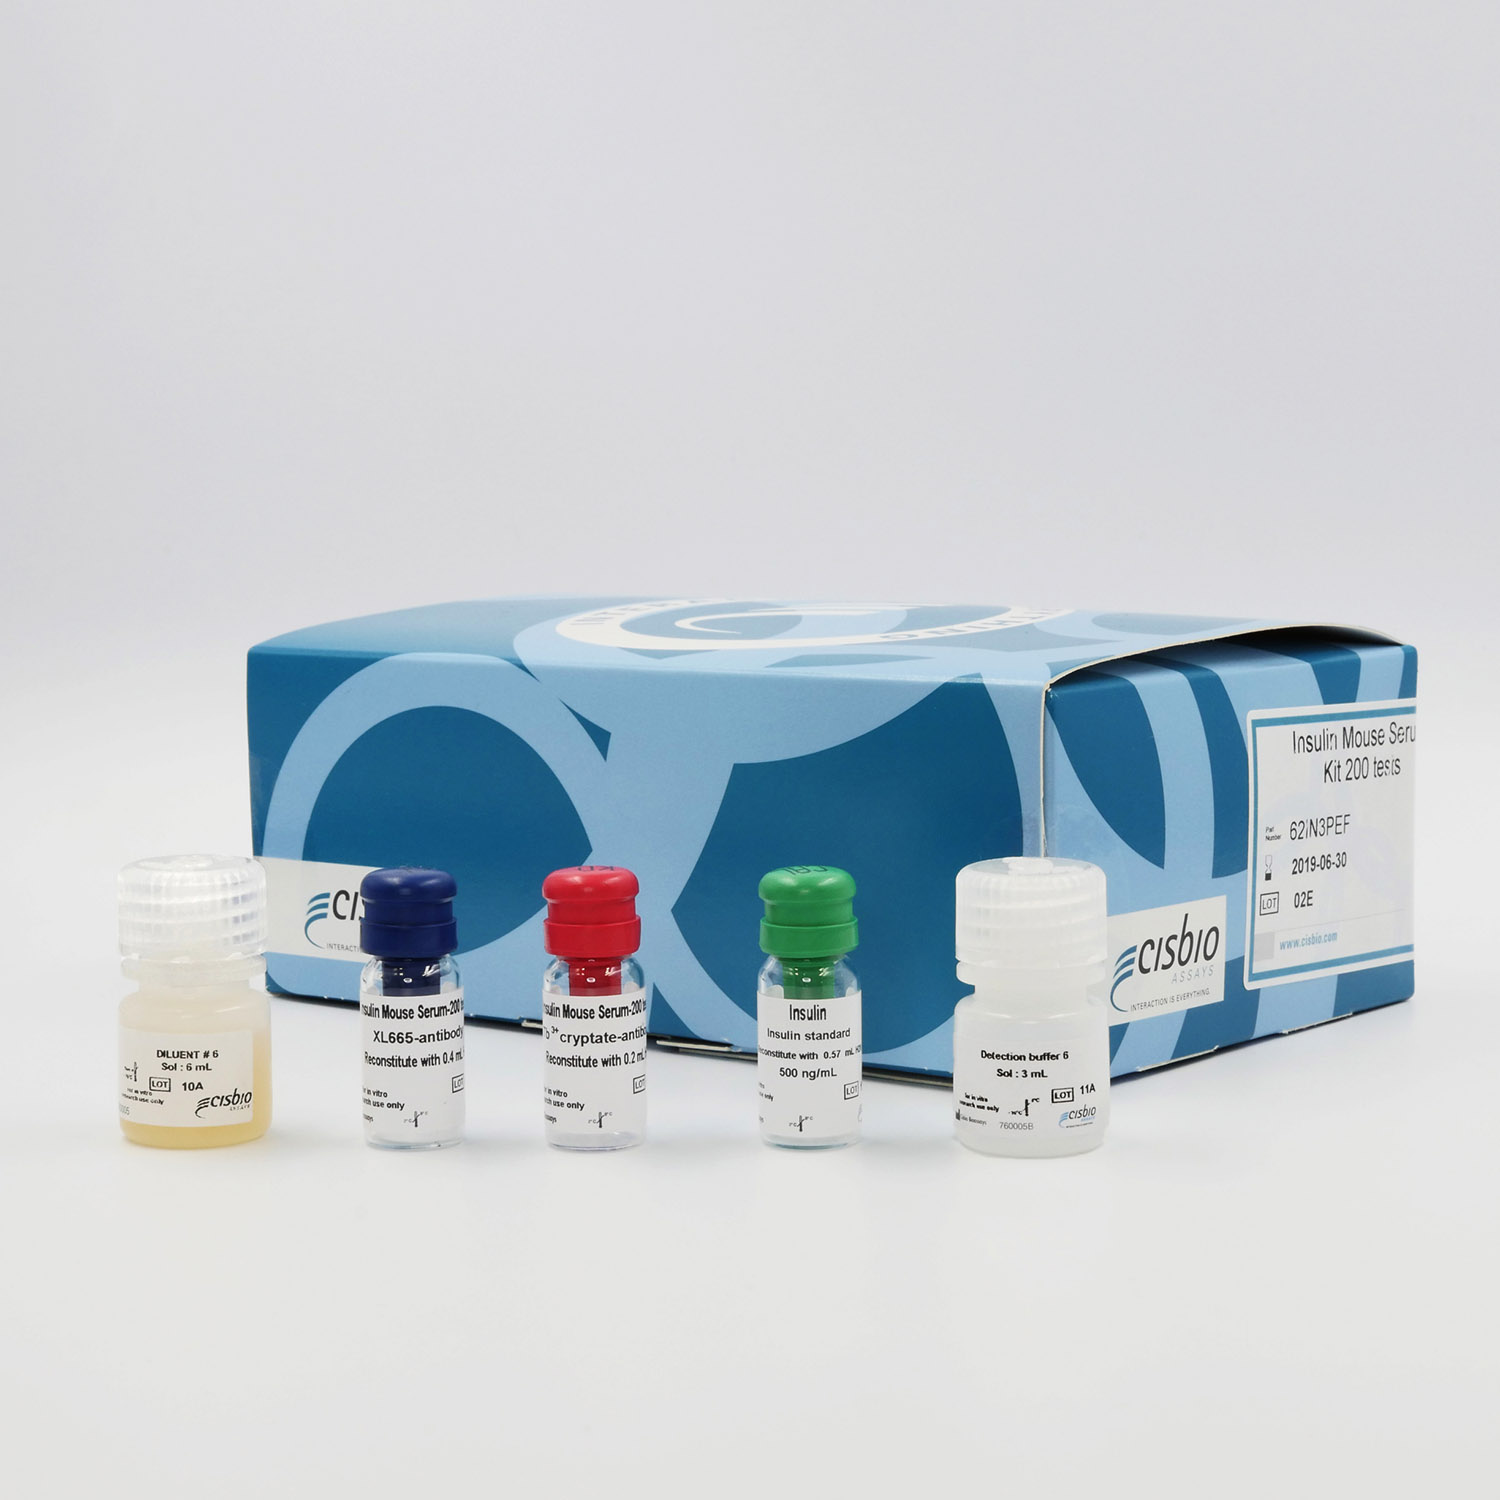 Photography of Insulin Mouse Serum kit